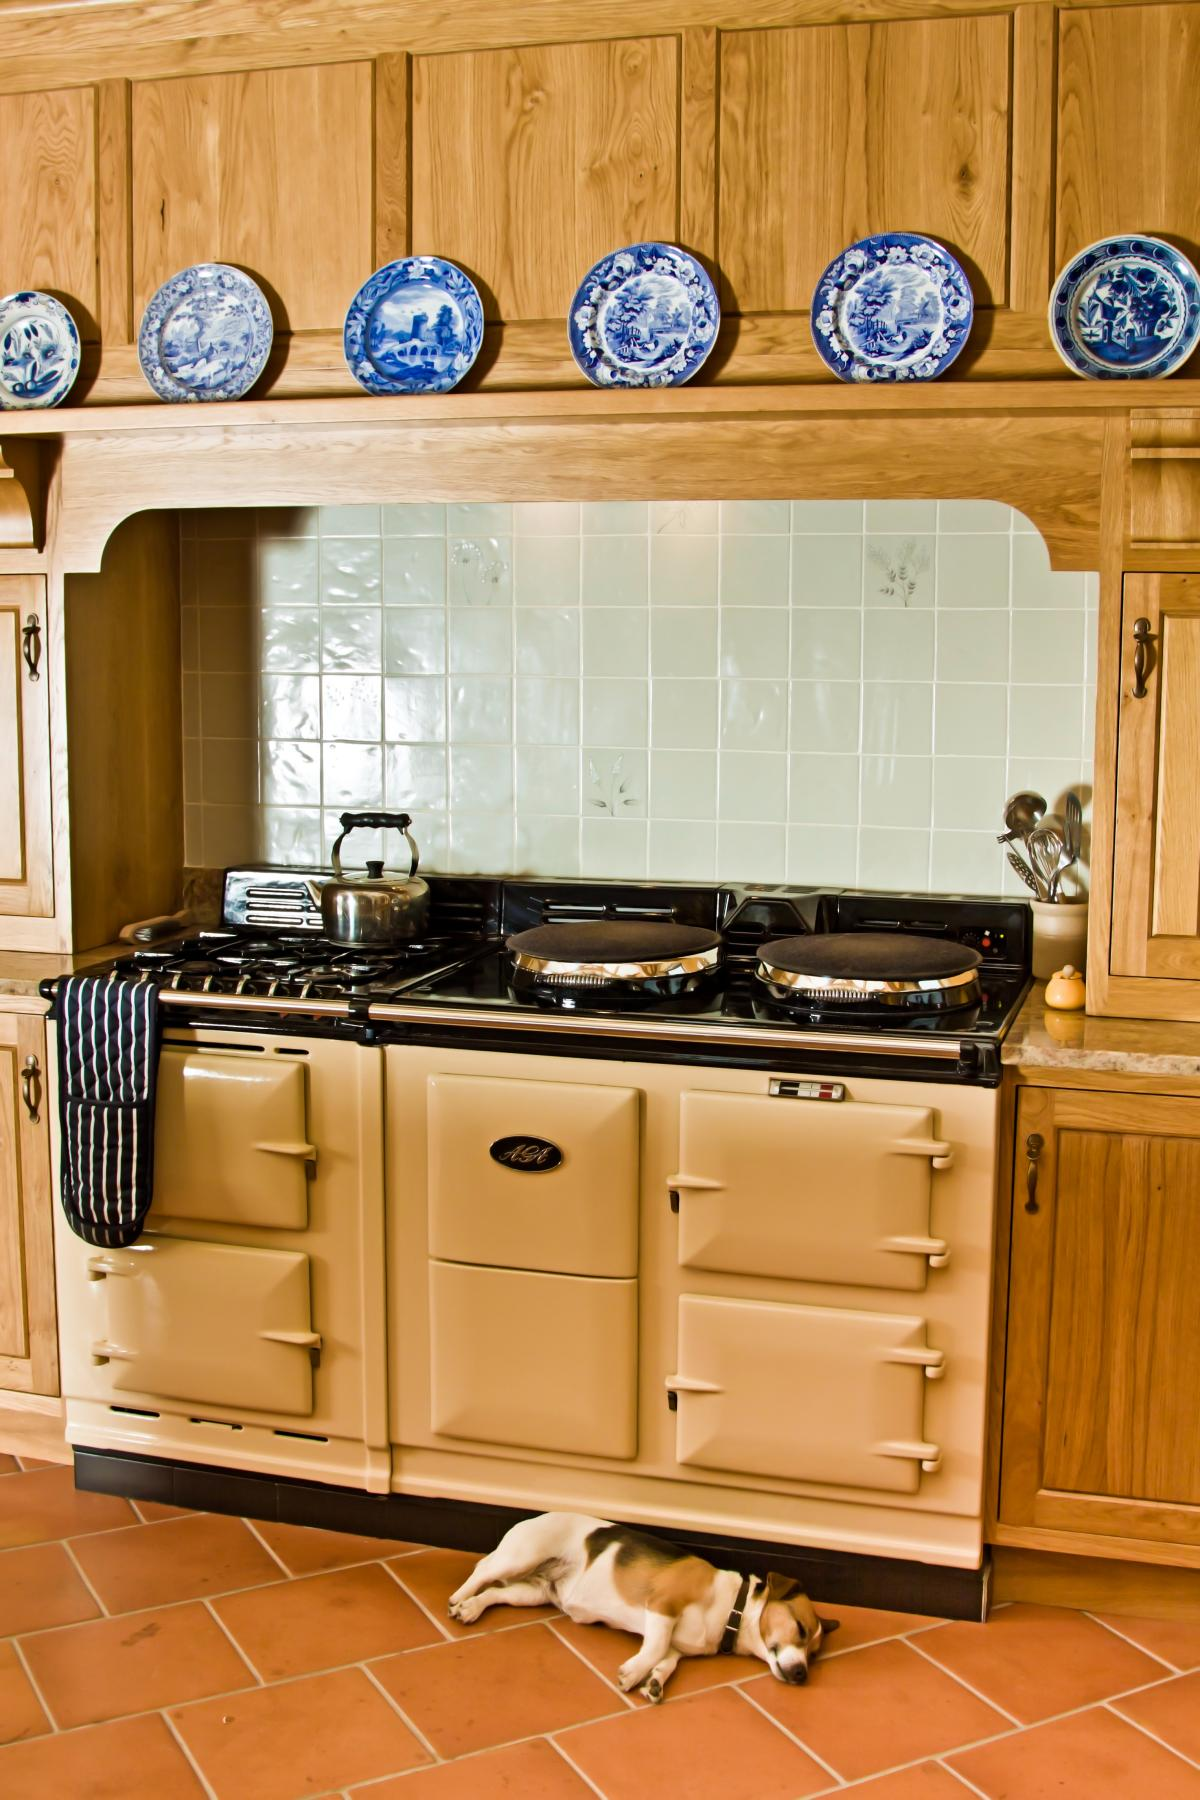 18 kitchen welsh dresser bespoke kitchen from reclaimed for Fitted kitchen dresser unit